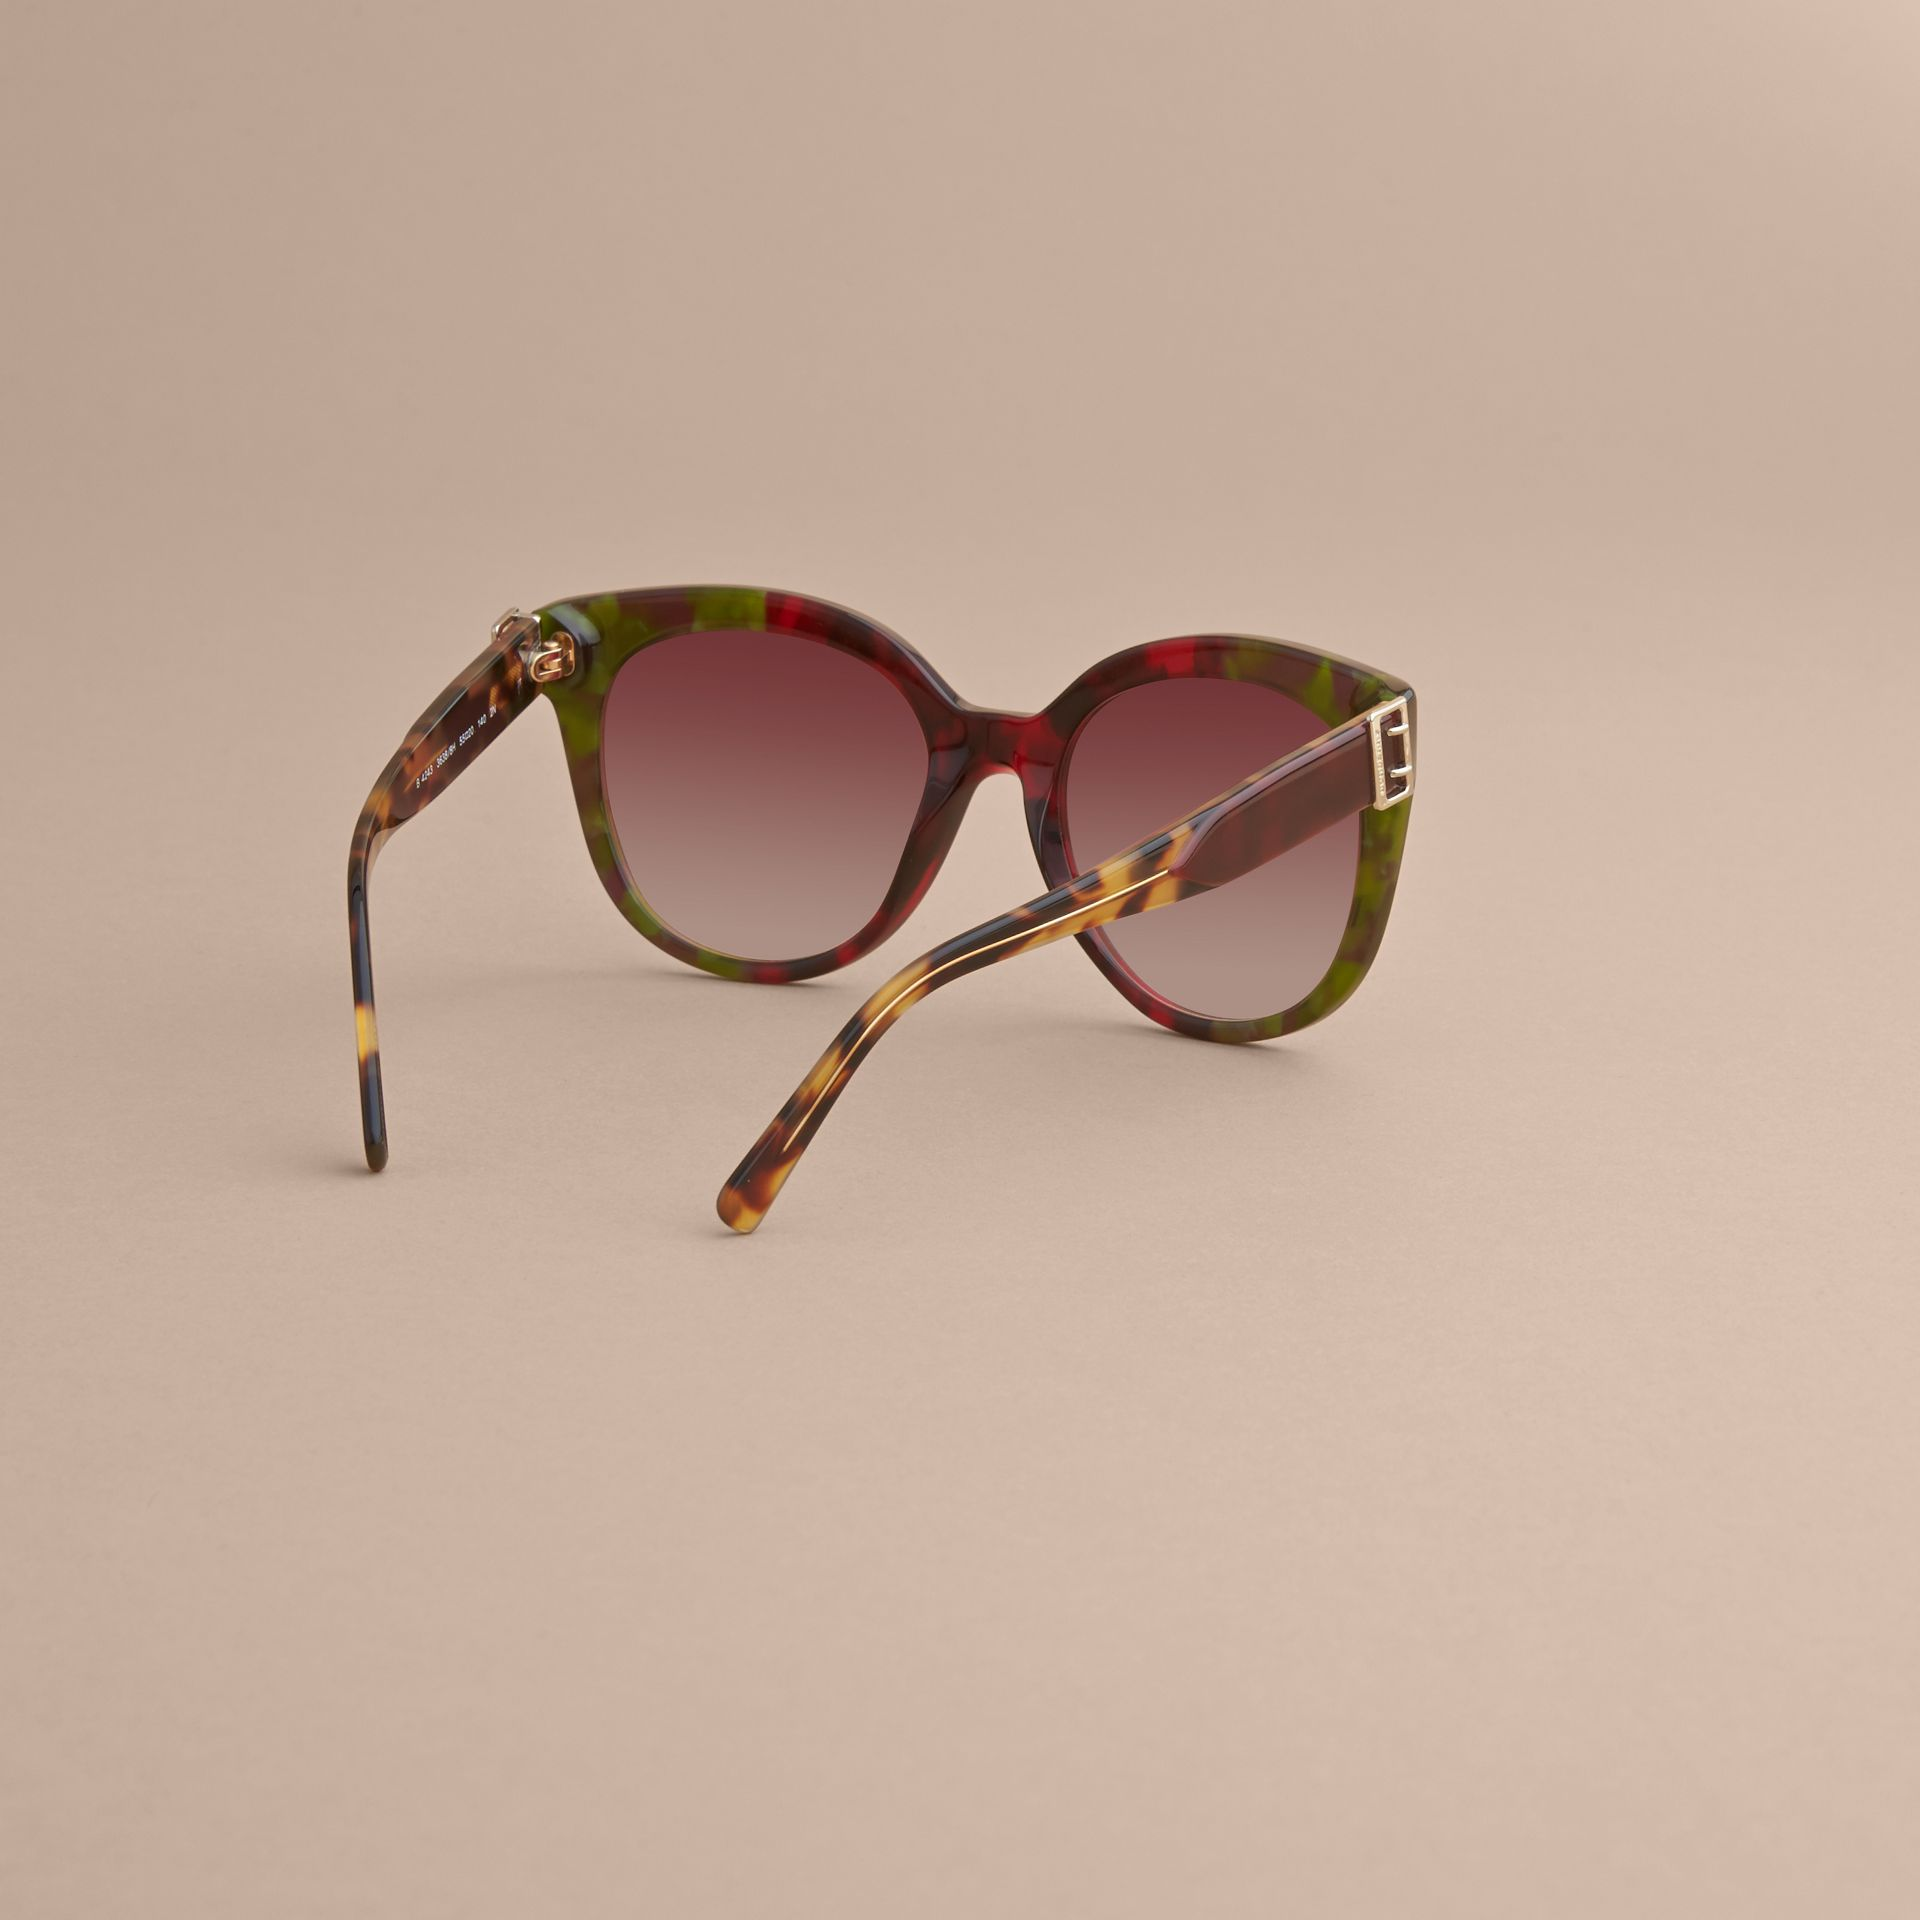 Buckle Detail Cat-eye Frame Sunglasses in Cardinal Red - Women | Burberry - gallery image 3